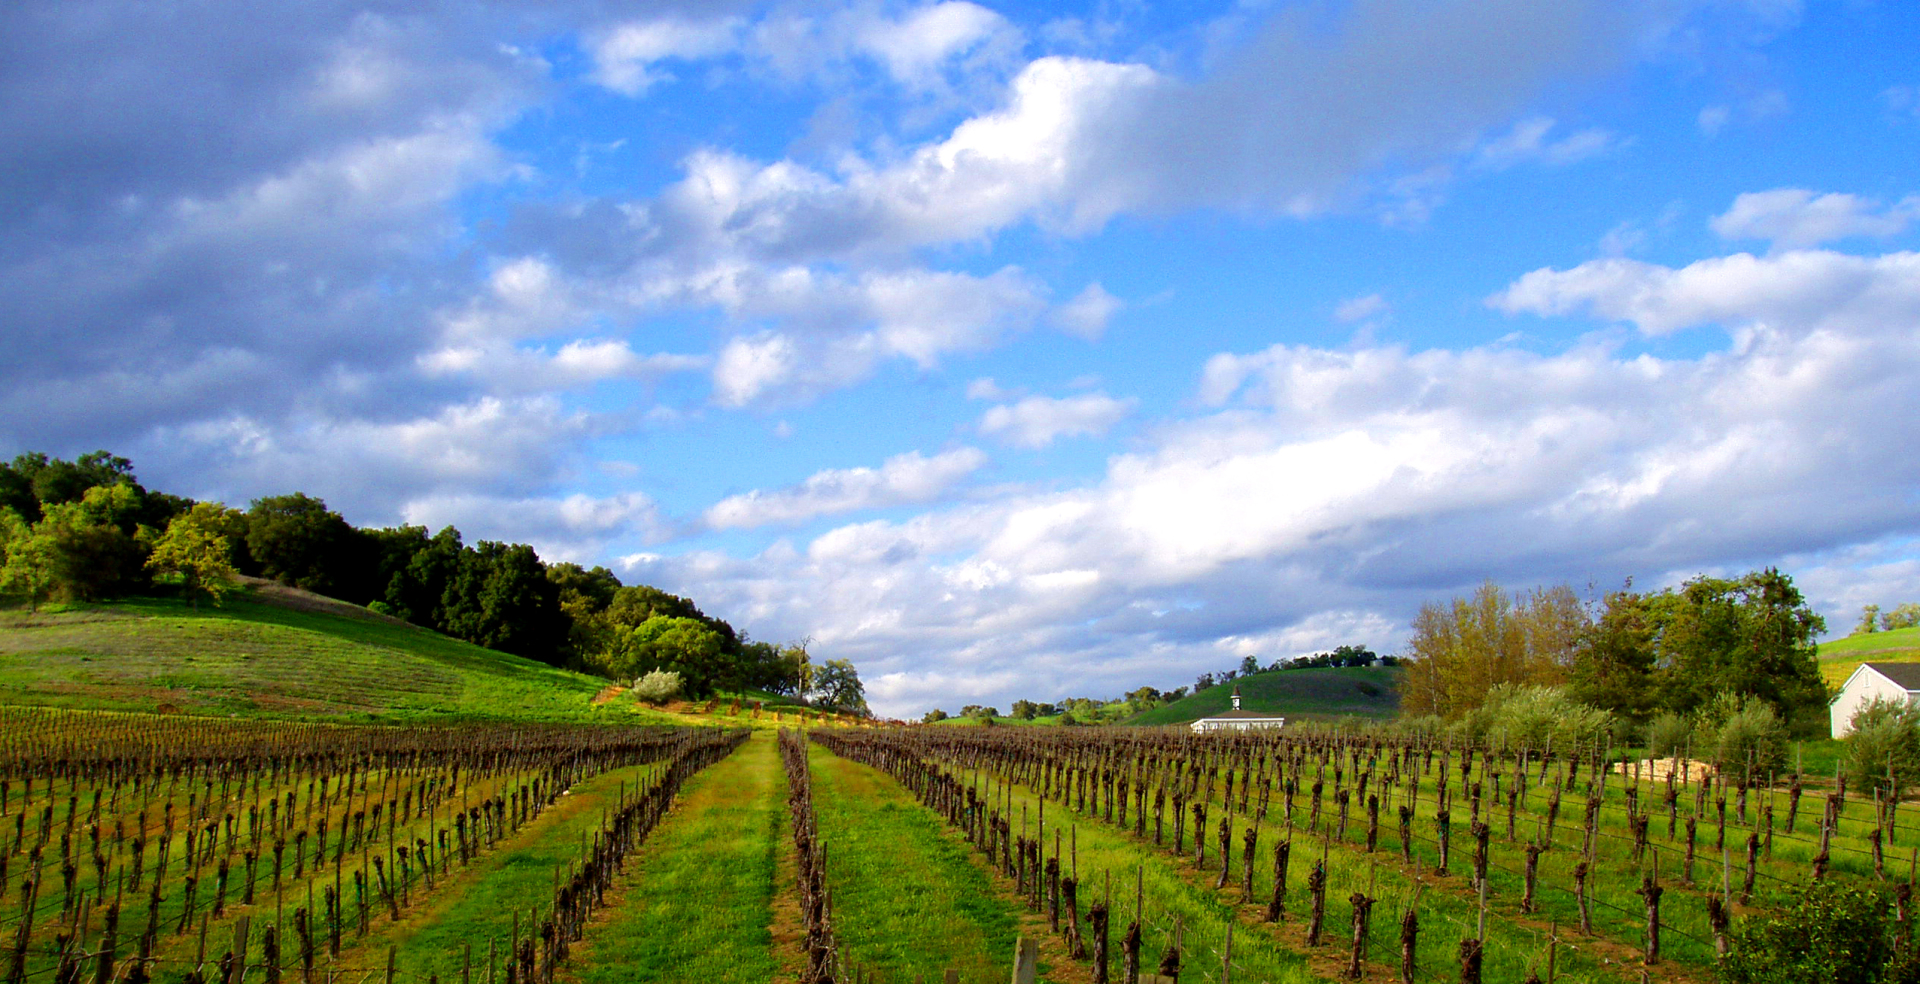 Vine Rows and Clouds